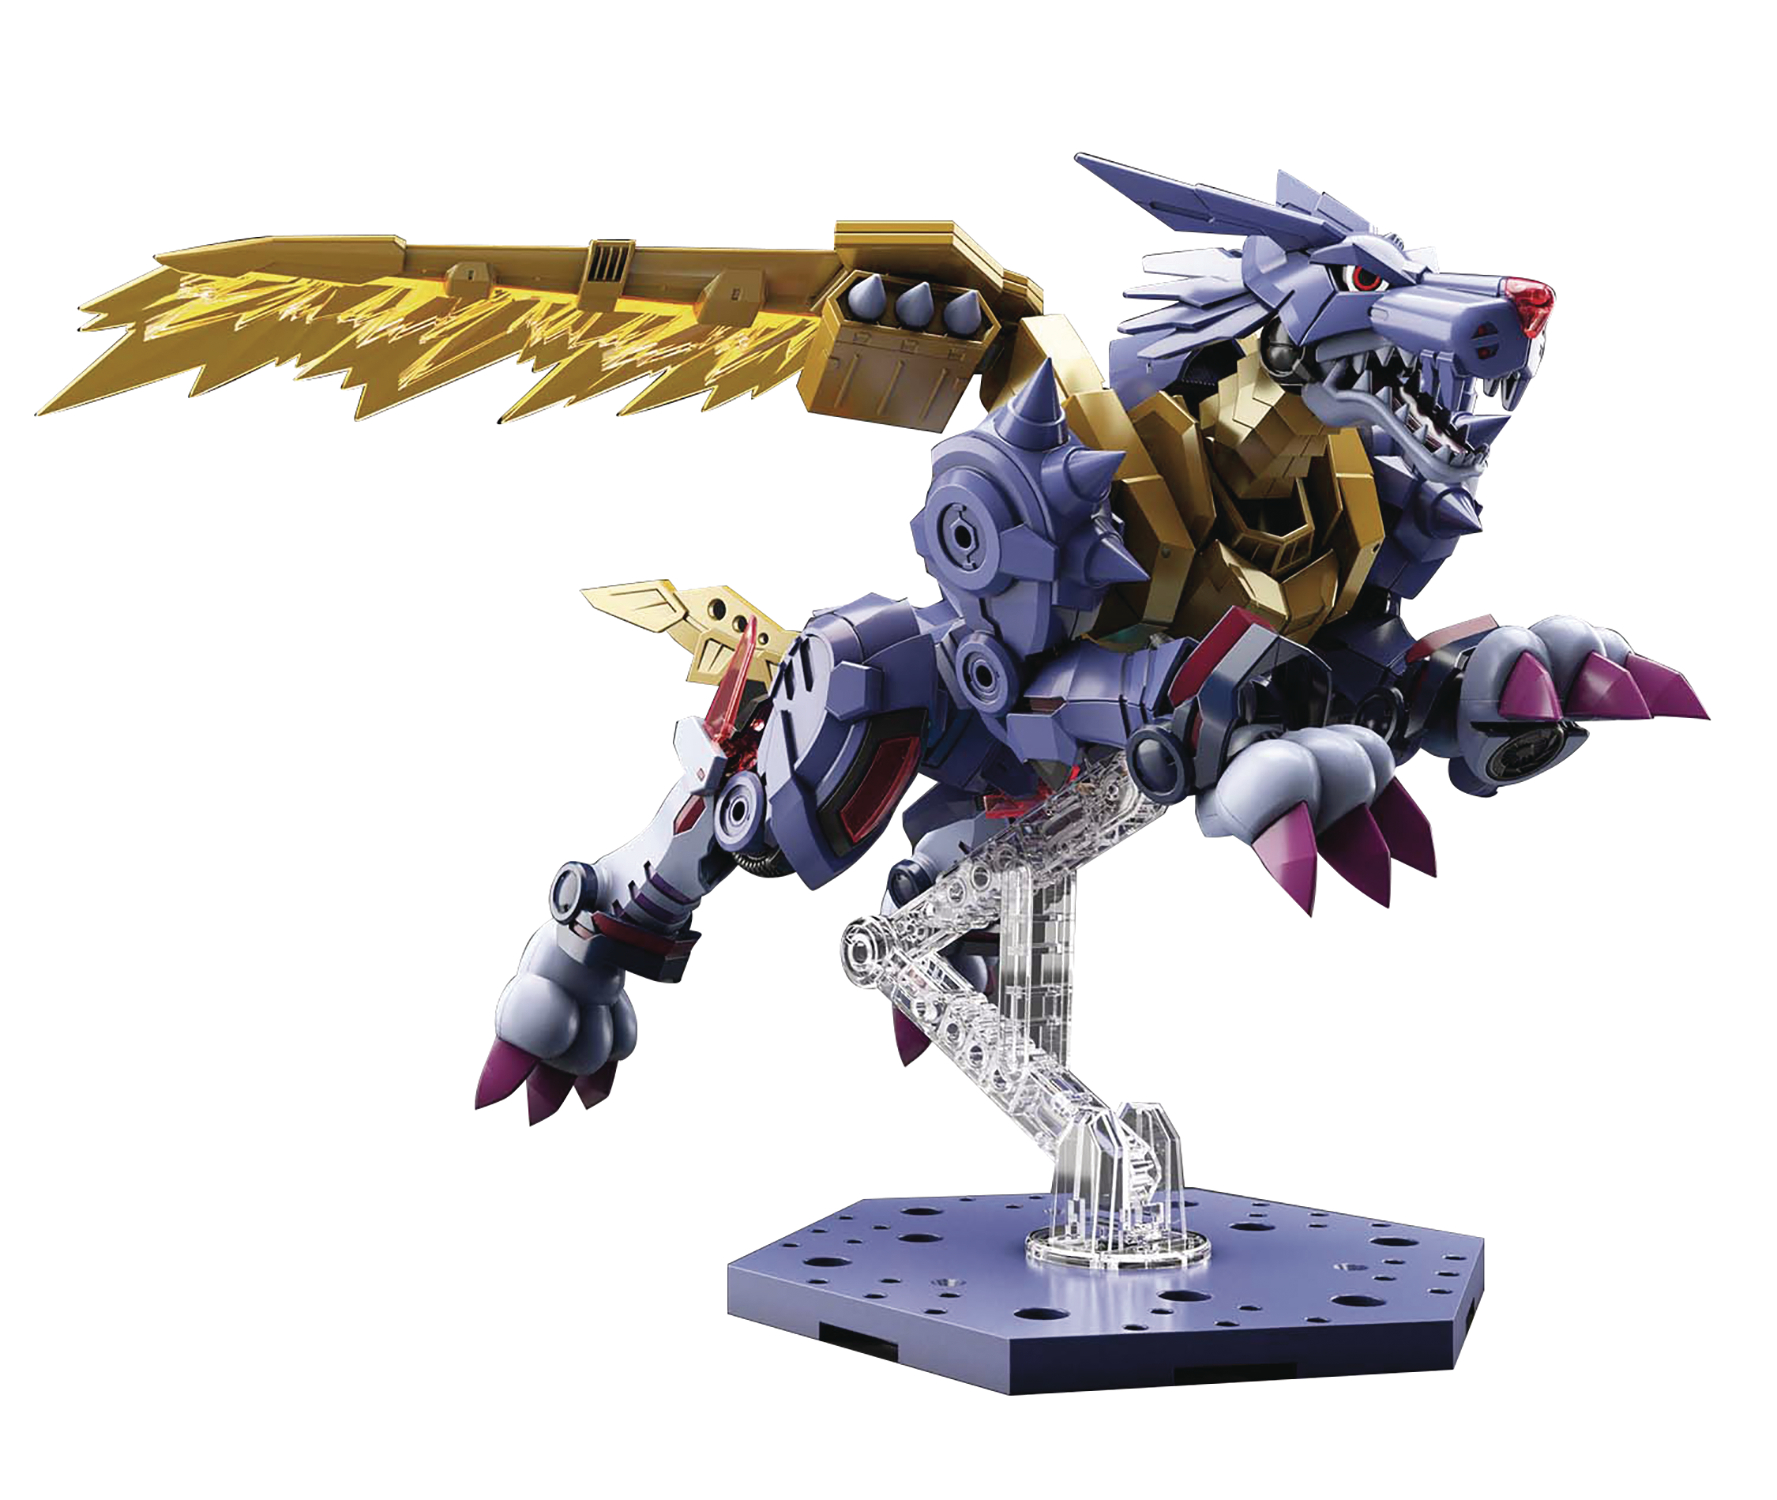 DIGIMON AMPLIFIED METAL GARURUMON FIG-RISE STD MDL KIT